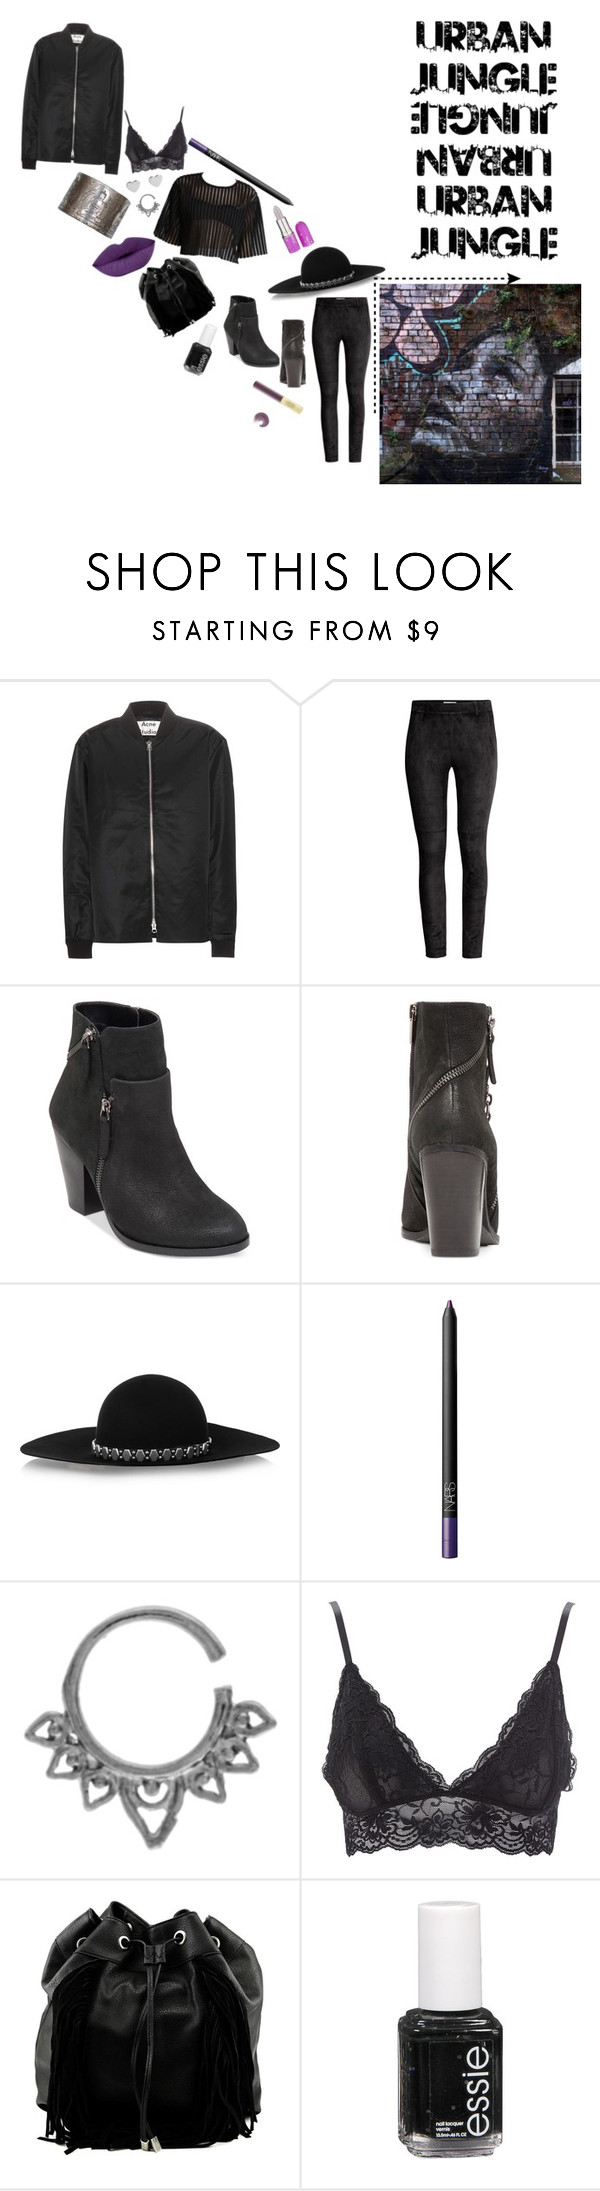 """""""B.M.3."""" by rosegoldtears ❤ liked on Polyvore featuring Acne Studios, H&M, Vince Camuto, Yves Saint Laurent, NARS Cosmetics, Charlotte Russe, Steve Madden and Essie"""